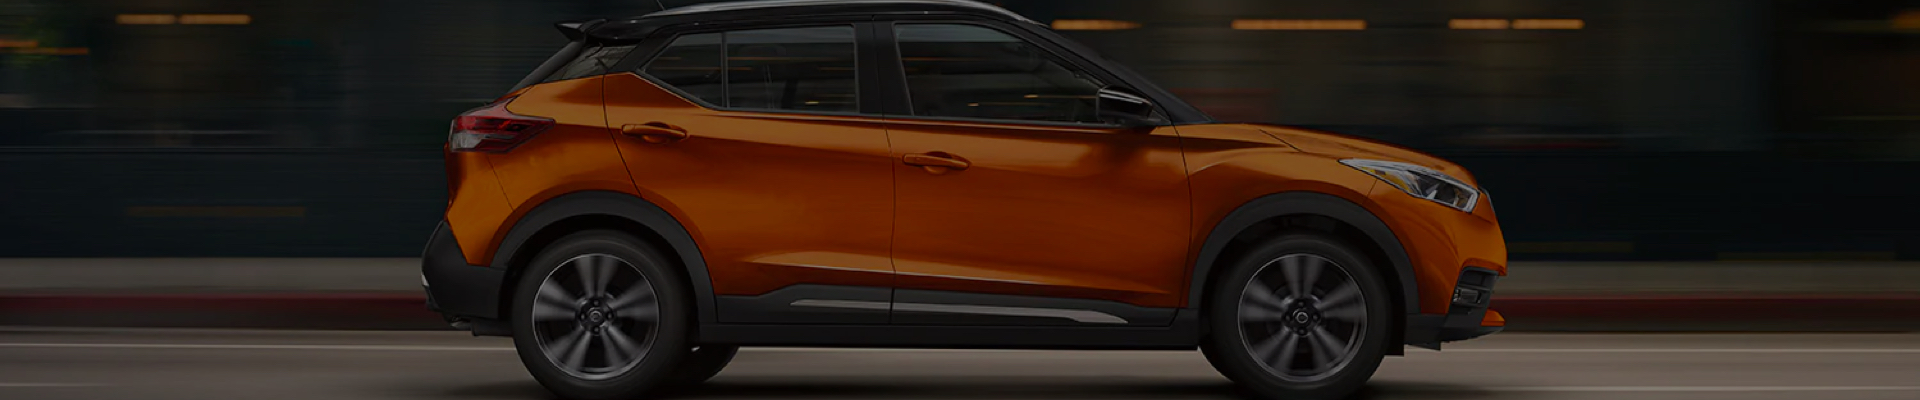 Orange Nissan Kicks side view